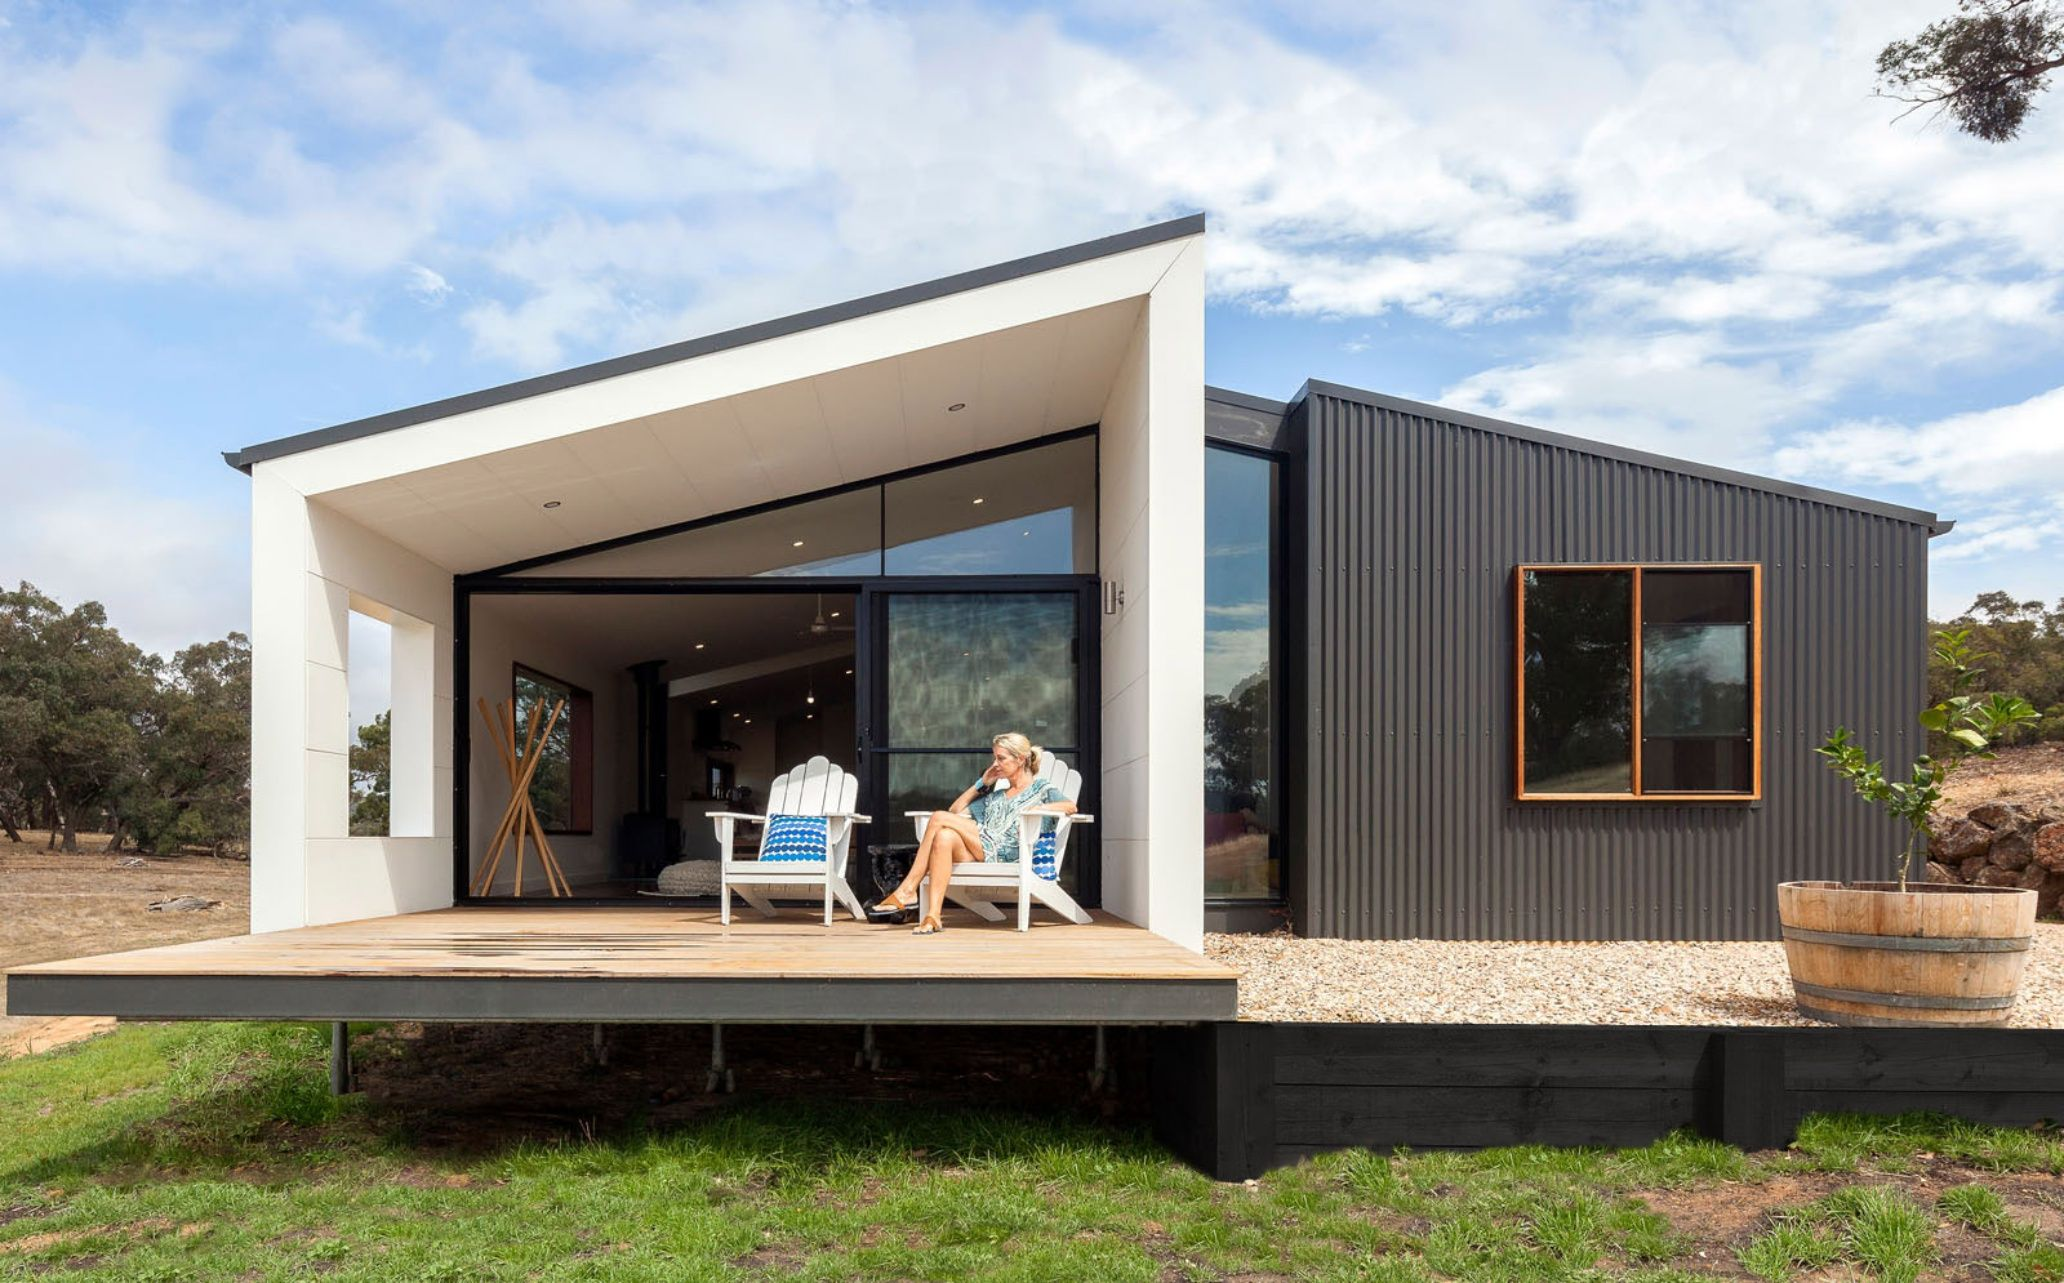 Design Your Own House With Low Cost Modern prefab homes